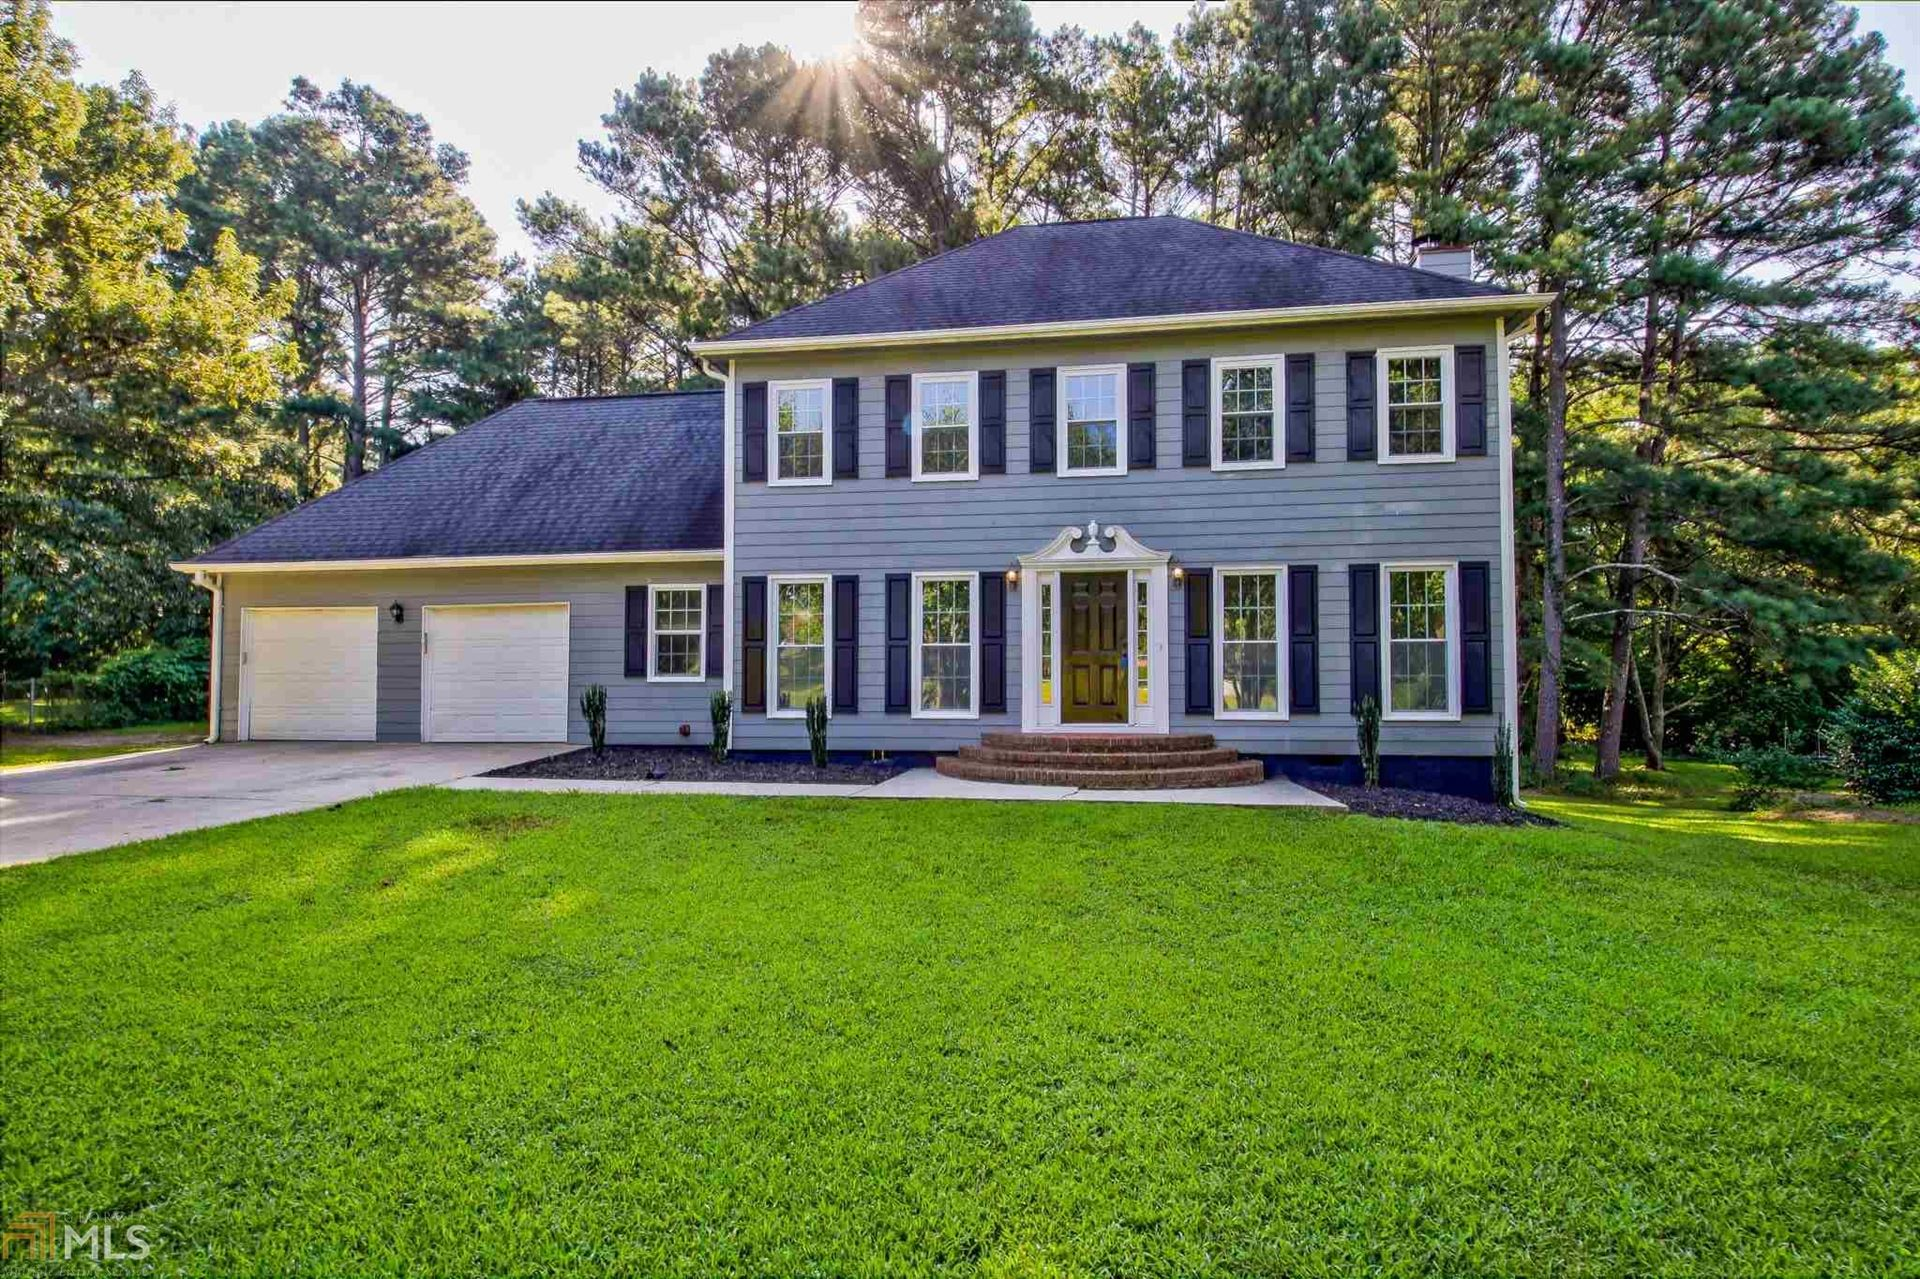 265 Country Squire Dr, Fayetteville, GA 30215 - #: 8834684